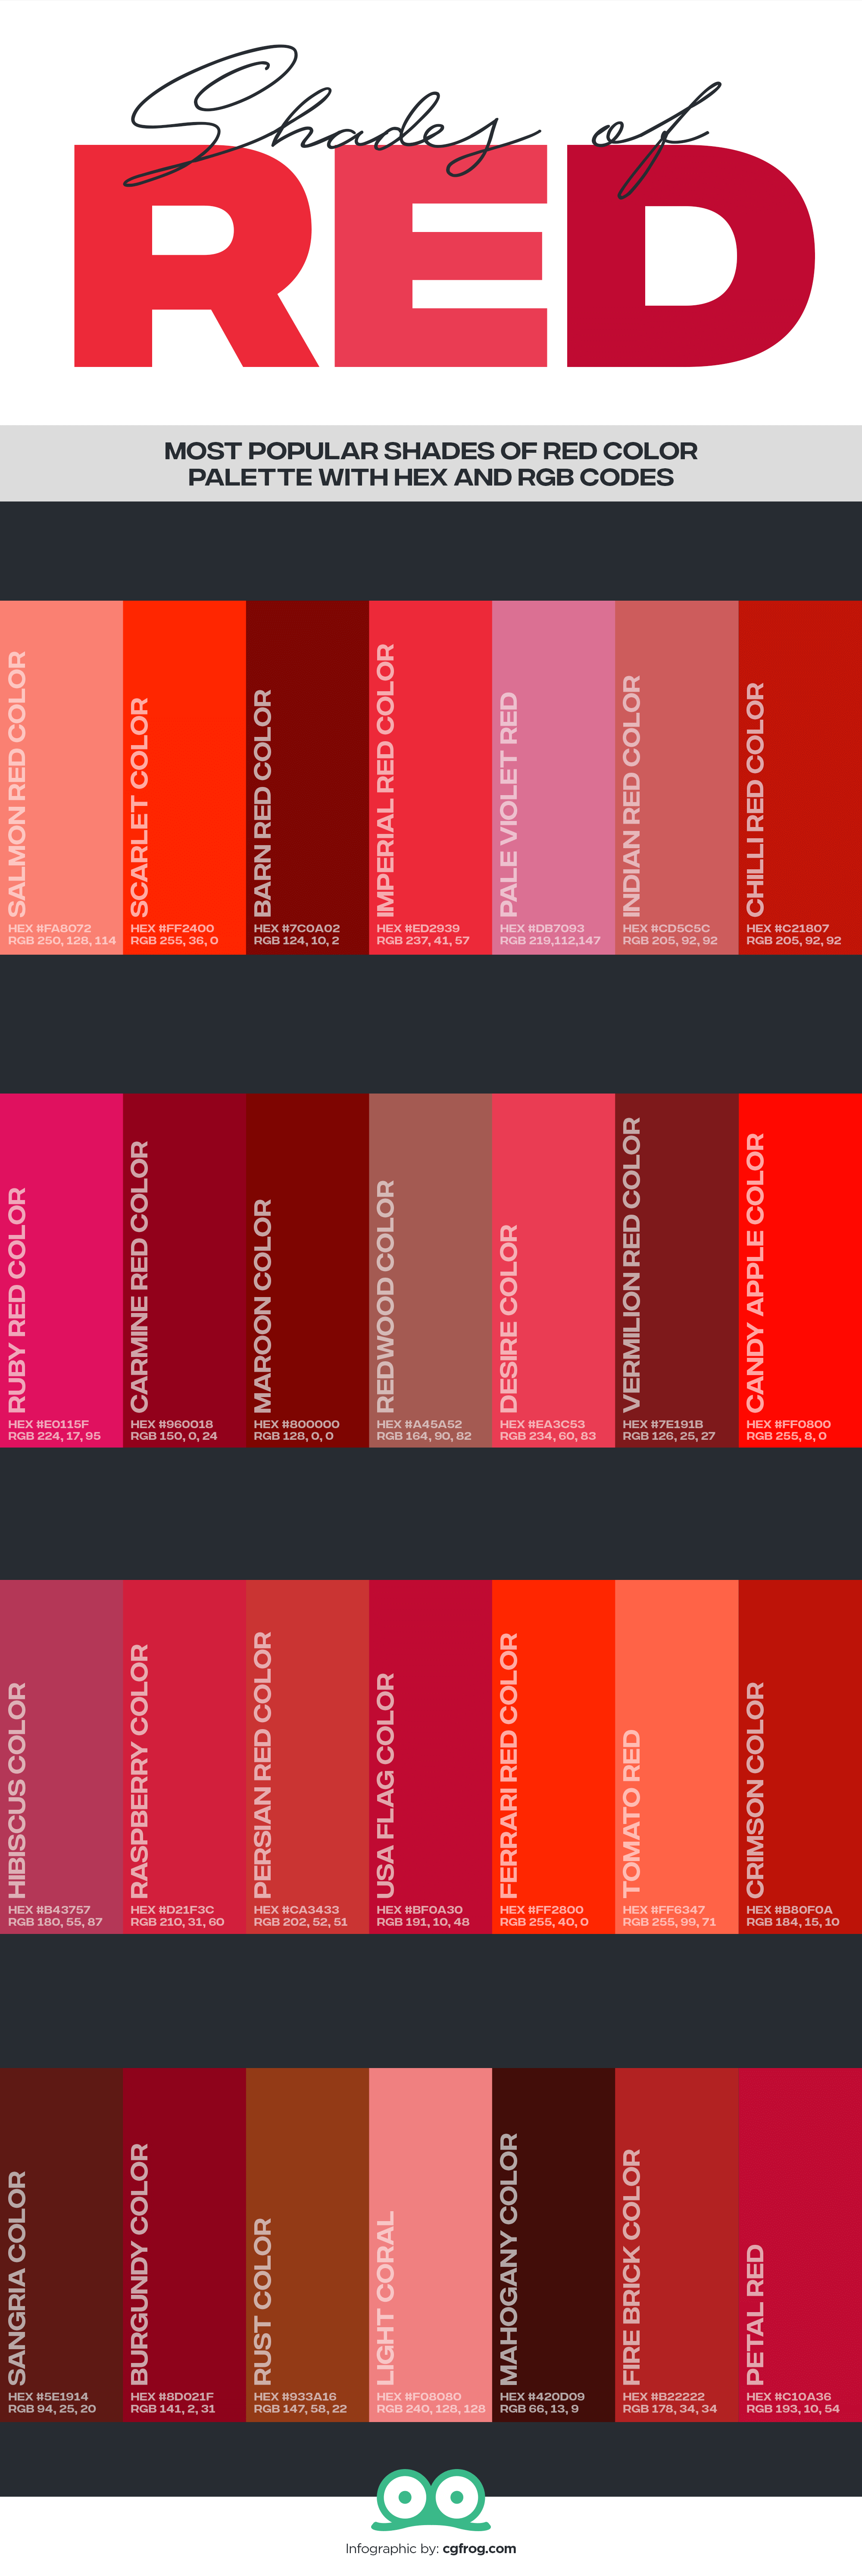 Popular Shades of Red Color Palette with Hex and RGB Codes